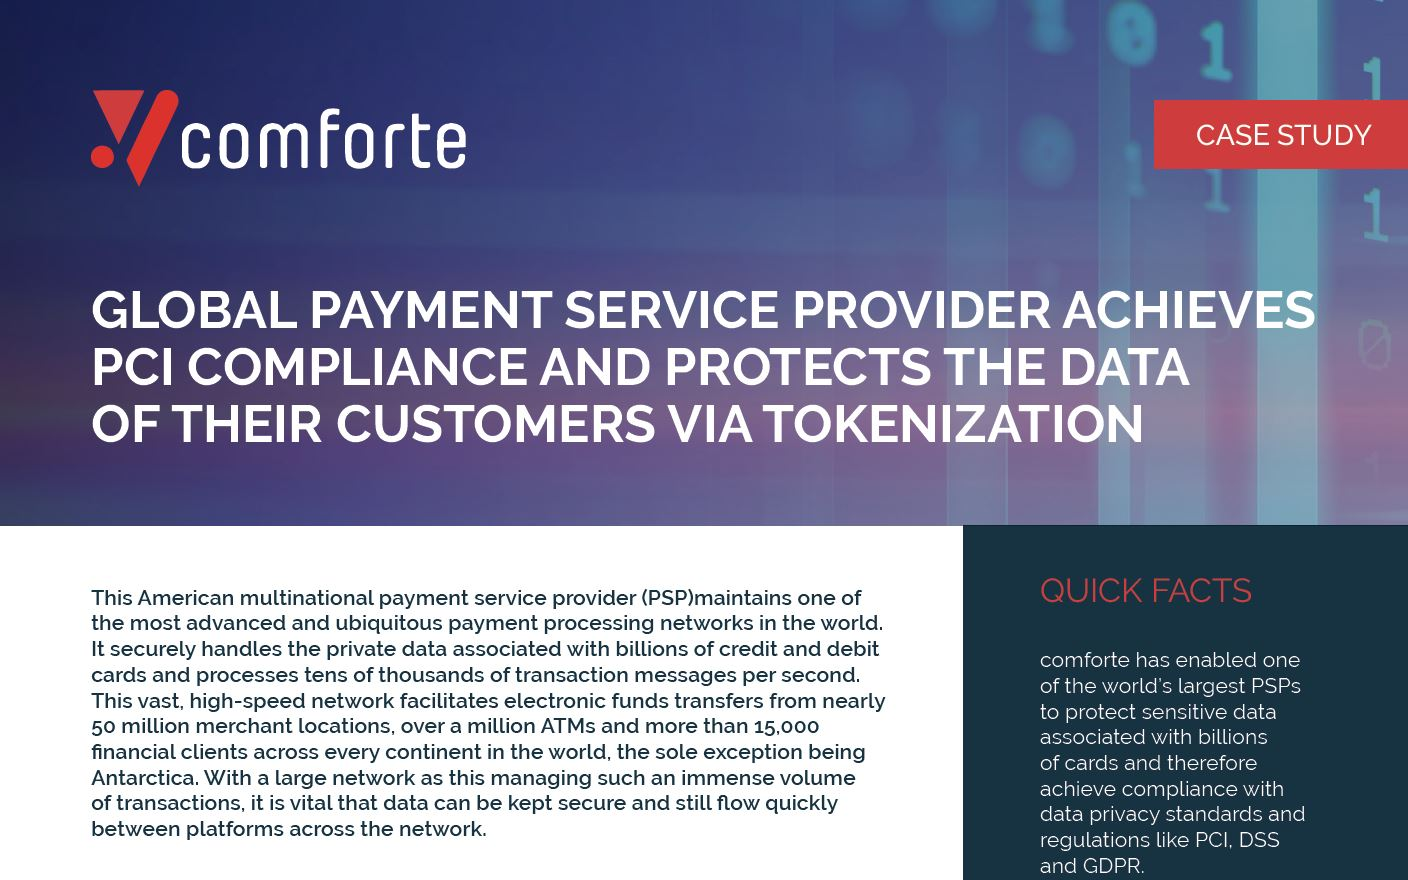 Global Payment Service Provider Achieves PCI Compliance with Data Protection